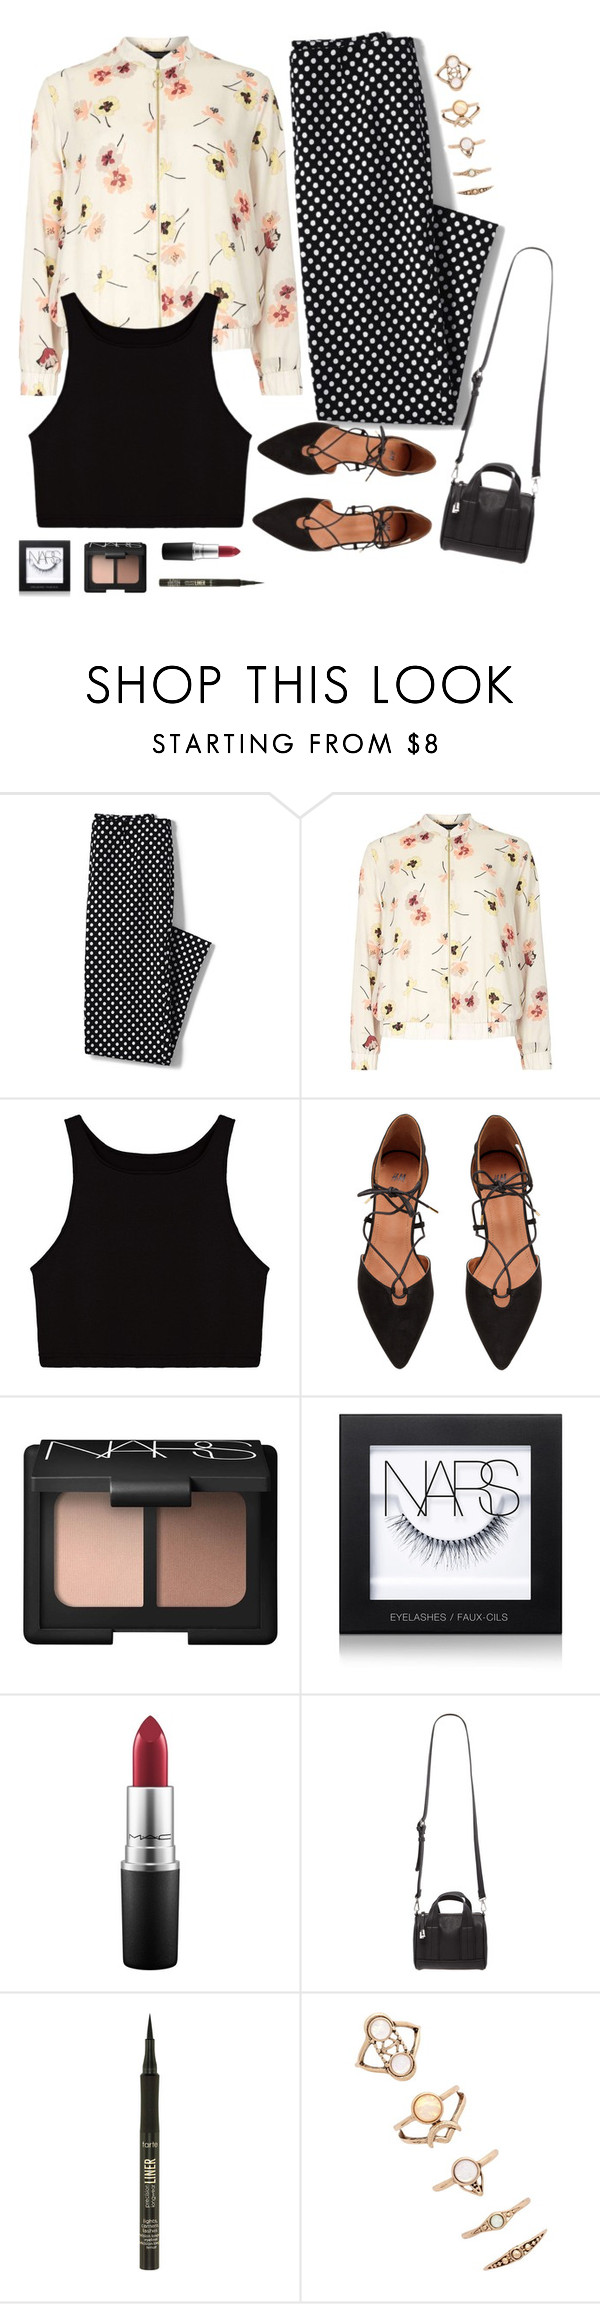 """""""Mixed Patterns"""" by kmeowj ❤ liked on Polyvore featuring Lands' End, Dorothy Perkins, NARS Cosmetics, MAC Cosmetics, Forever 21, tarte and patternmixing"""